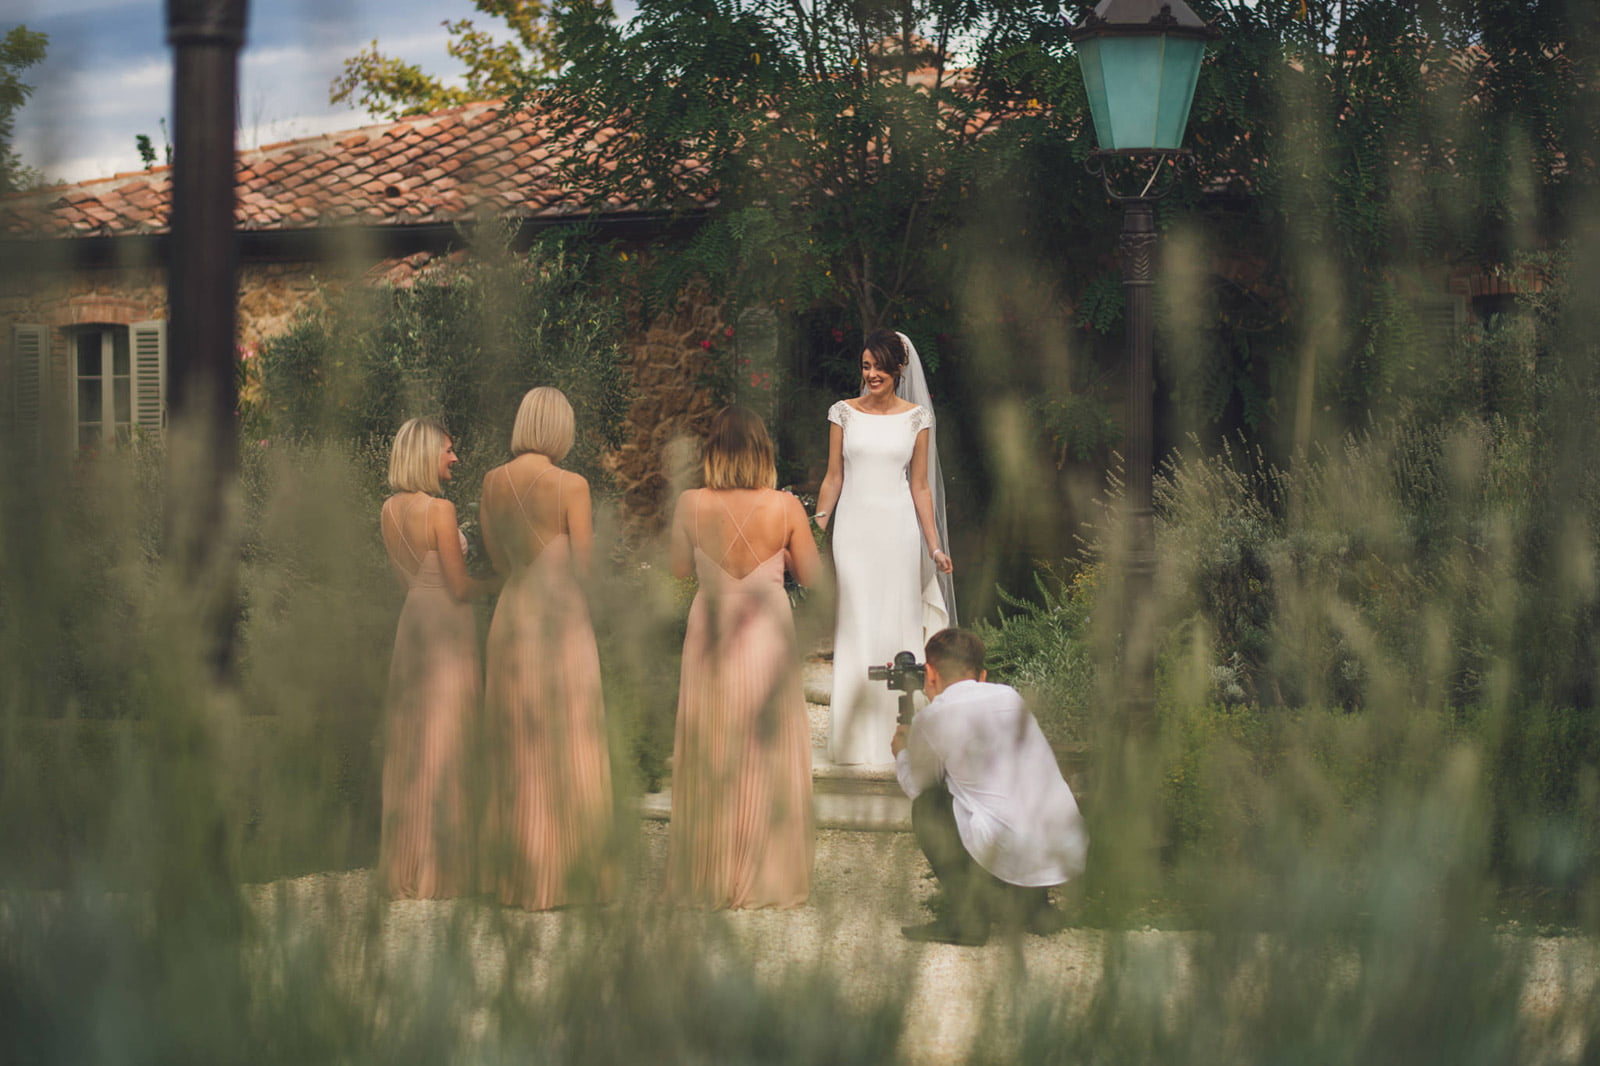 036-wedding-tuscany-san-galgano-federico-pannacci-photographer